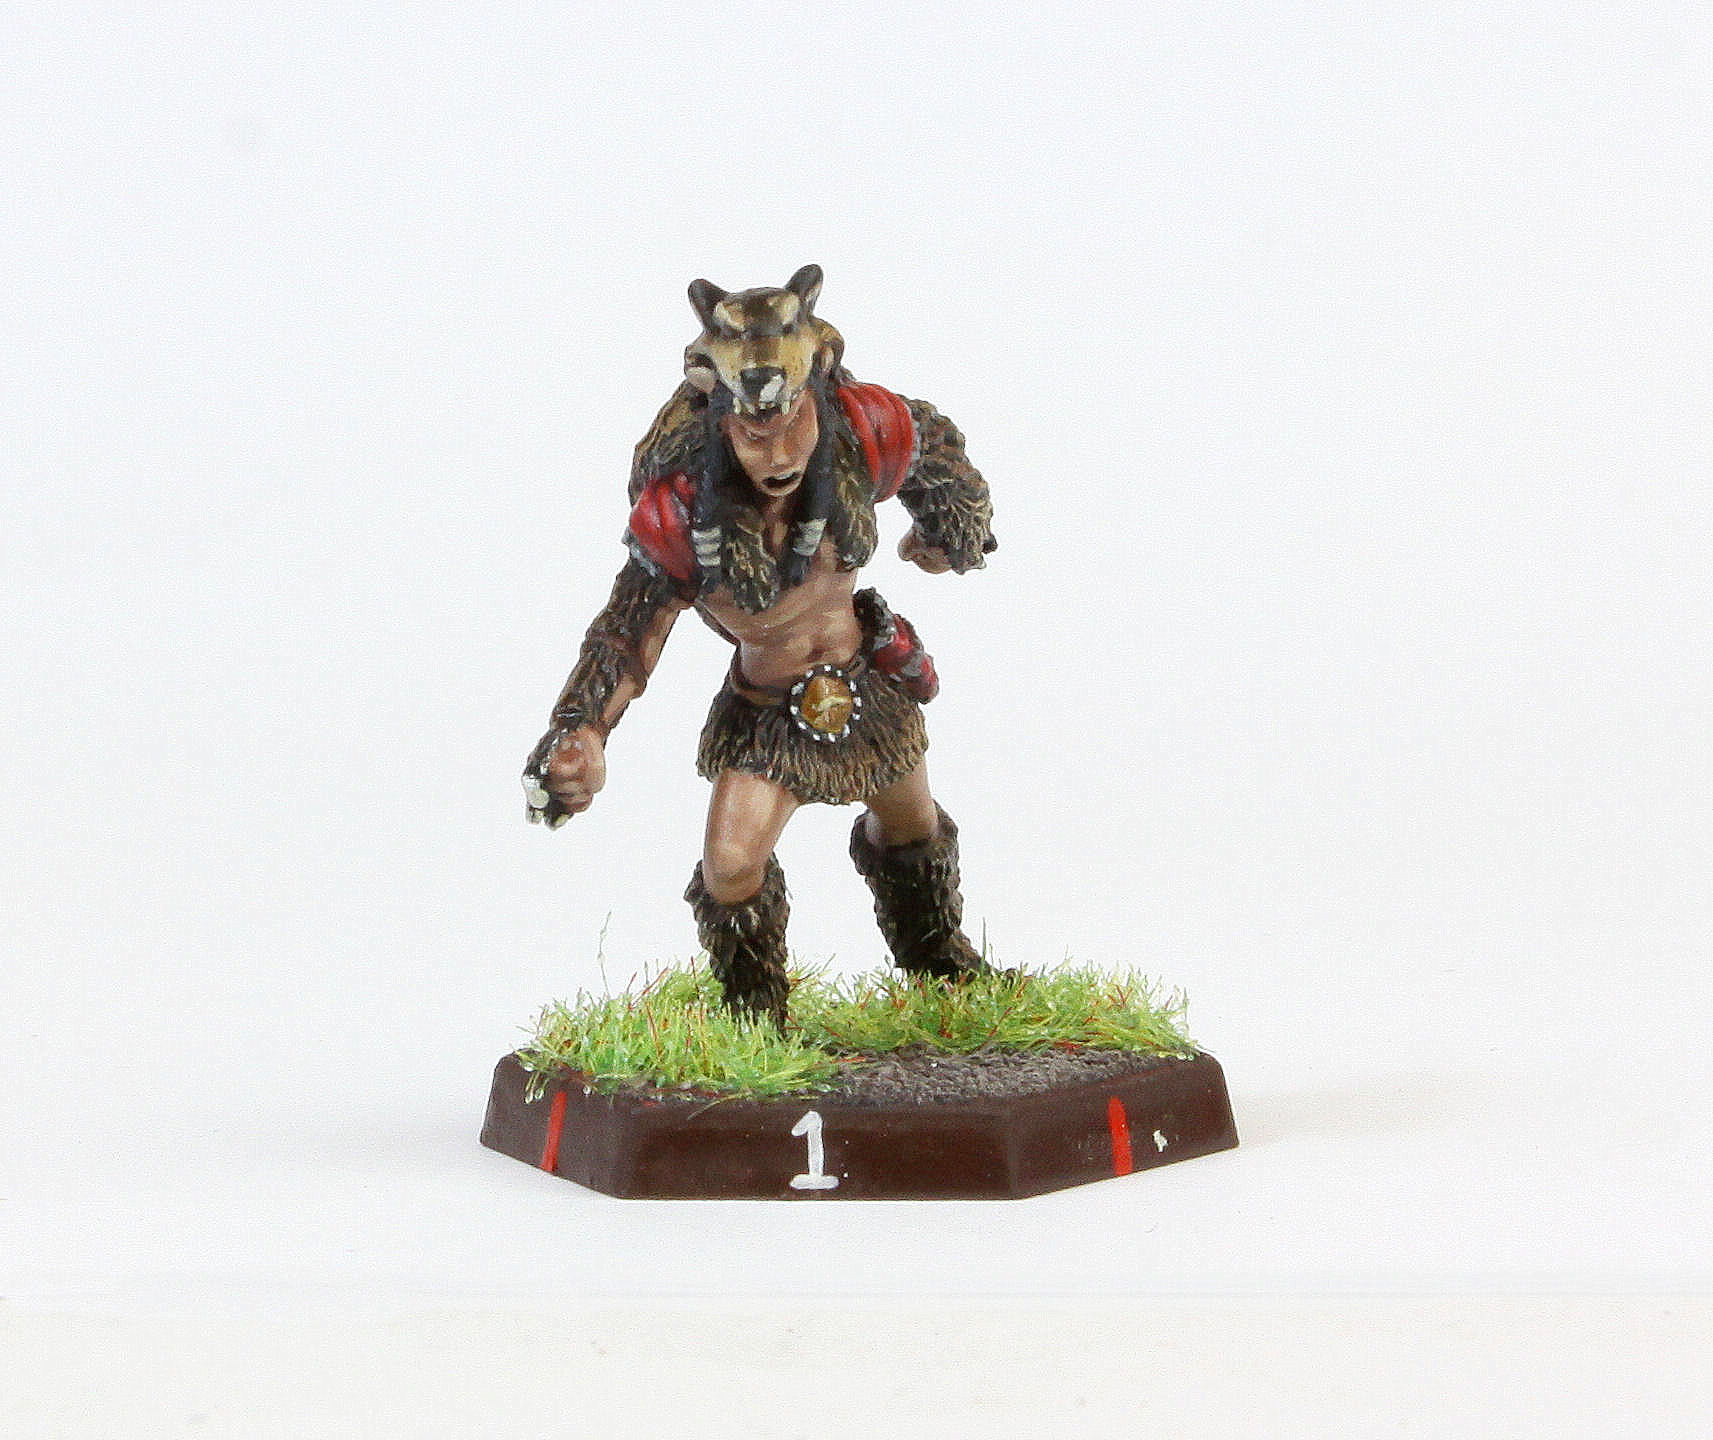 http://www.impactminiatures.com/minis/big/Timberline_Hunter1.jpg